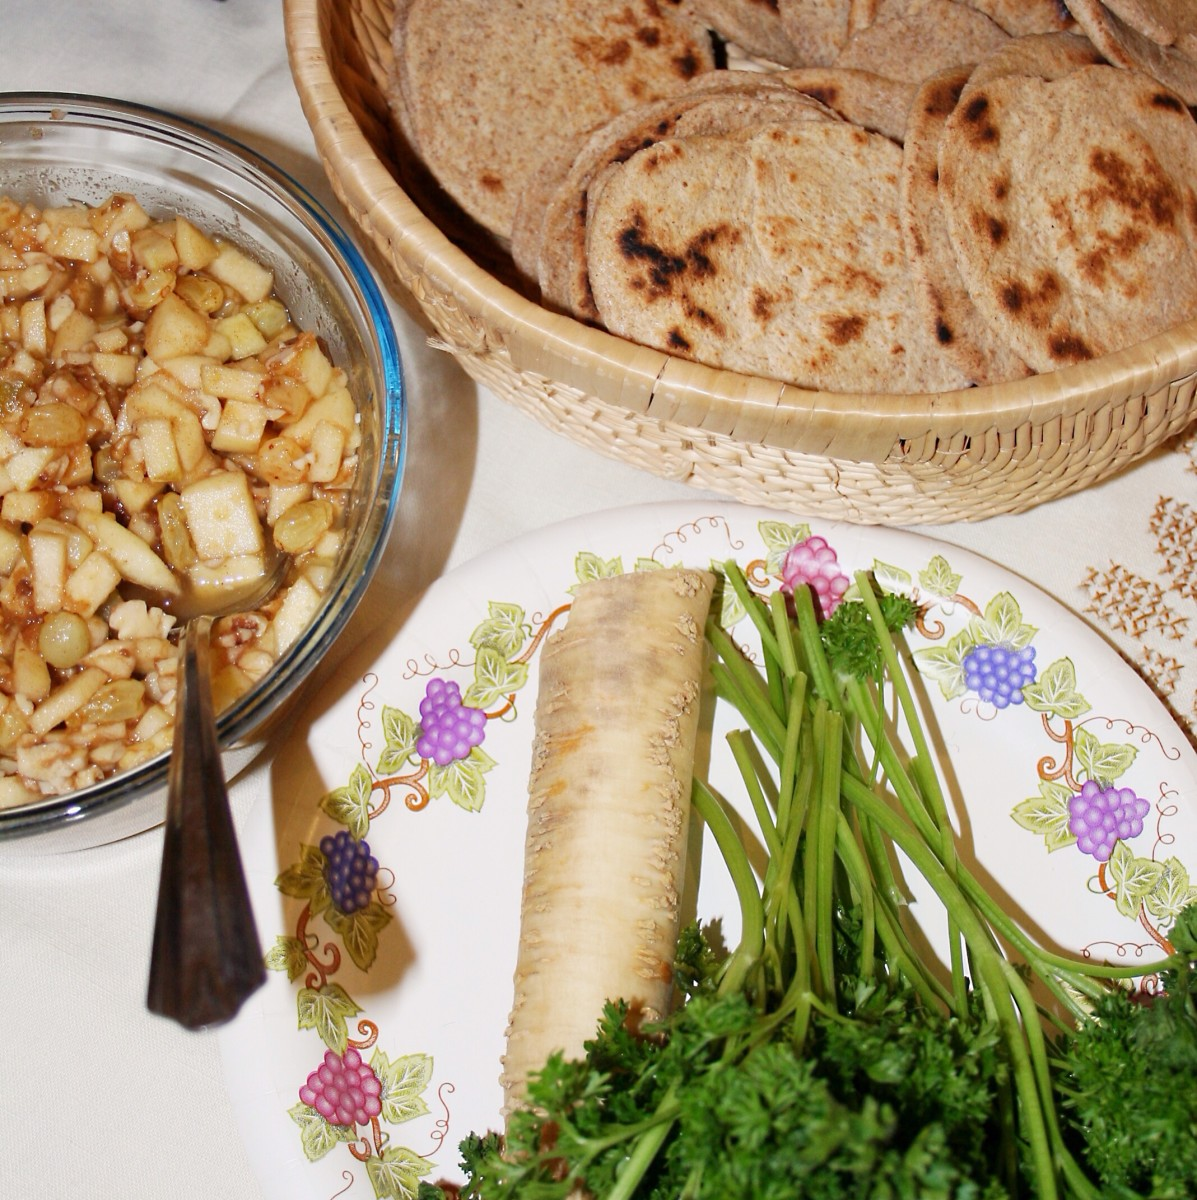 Foods prepared for a Passover Seder, including horseradish root